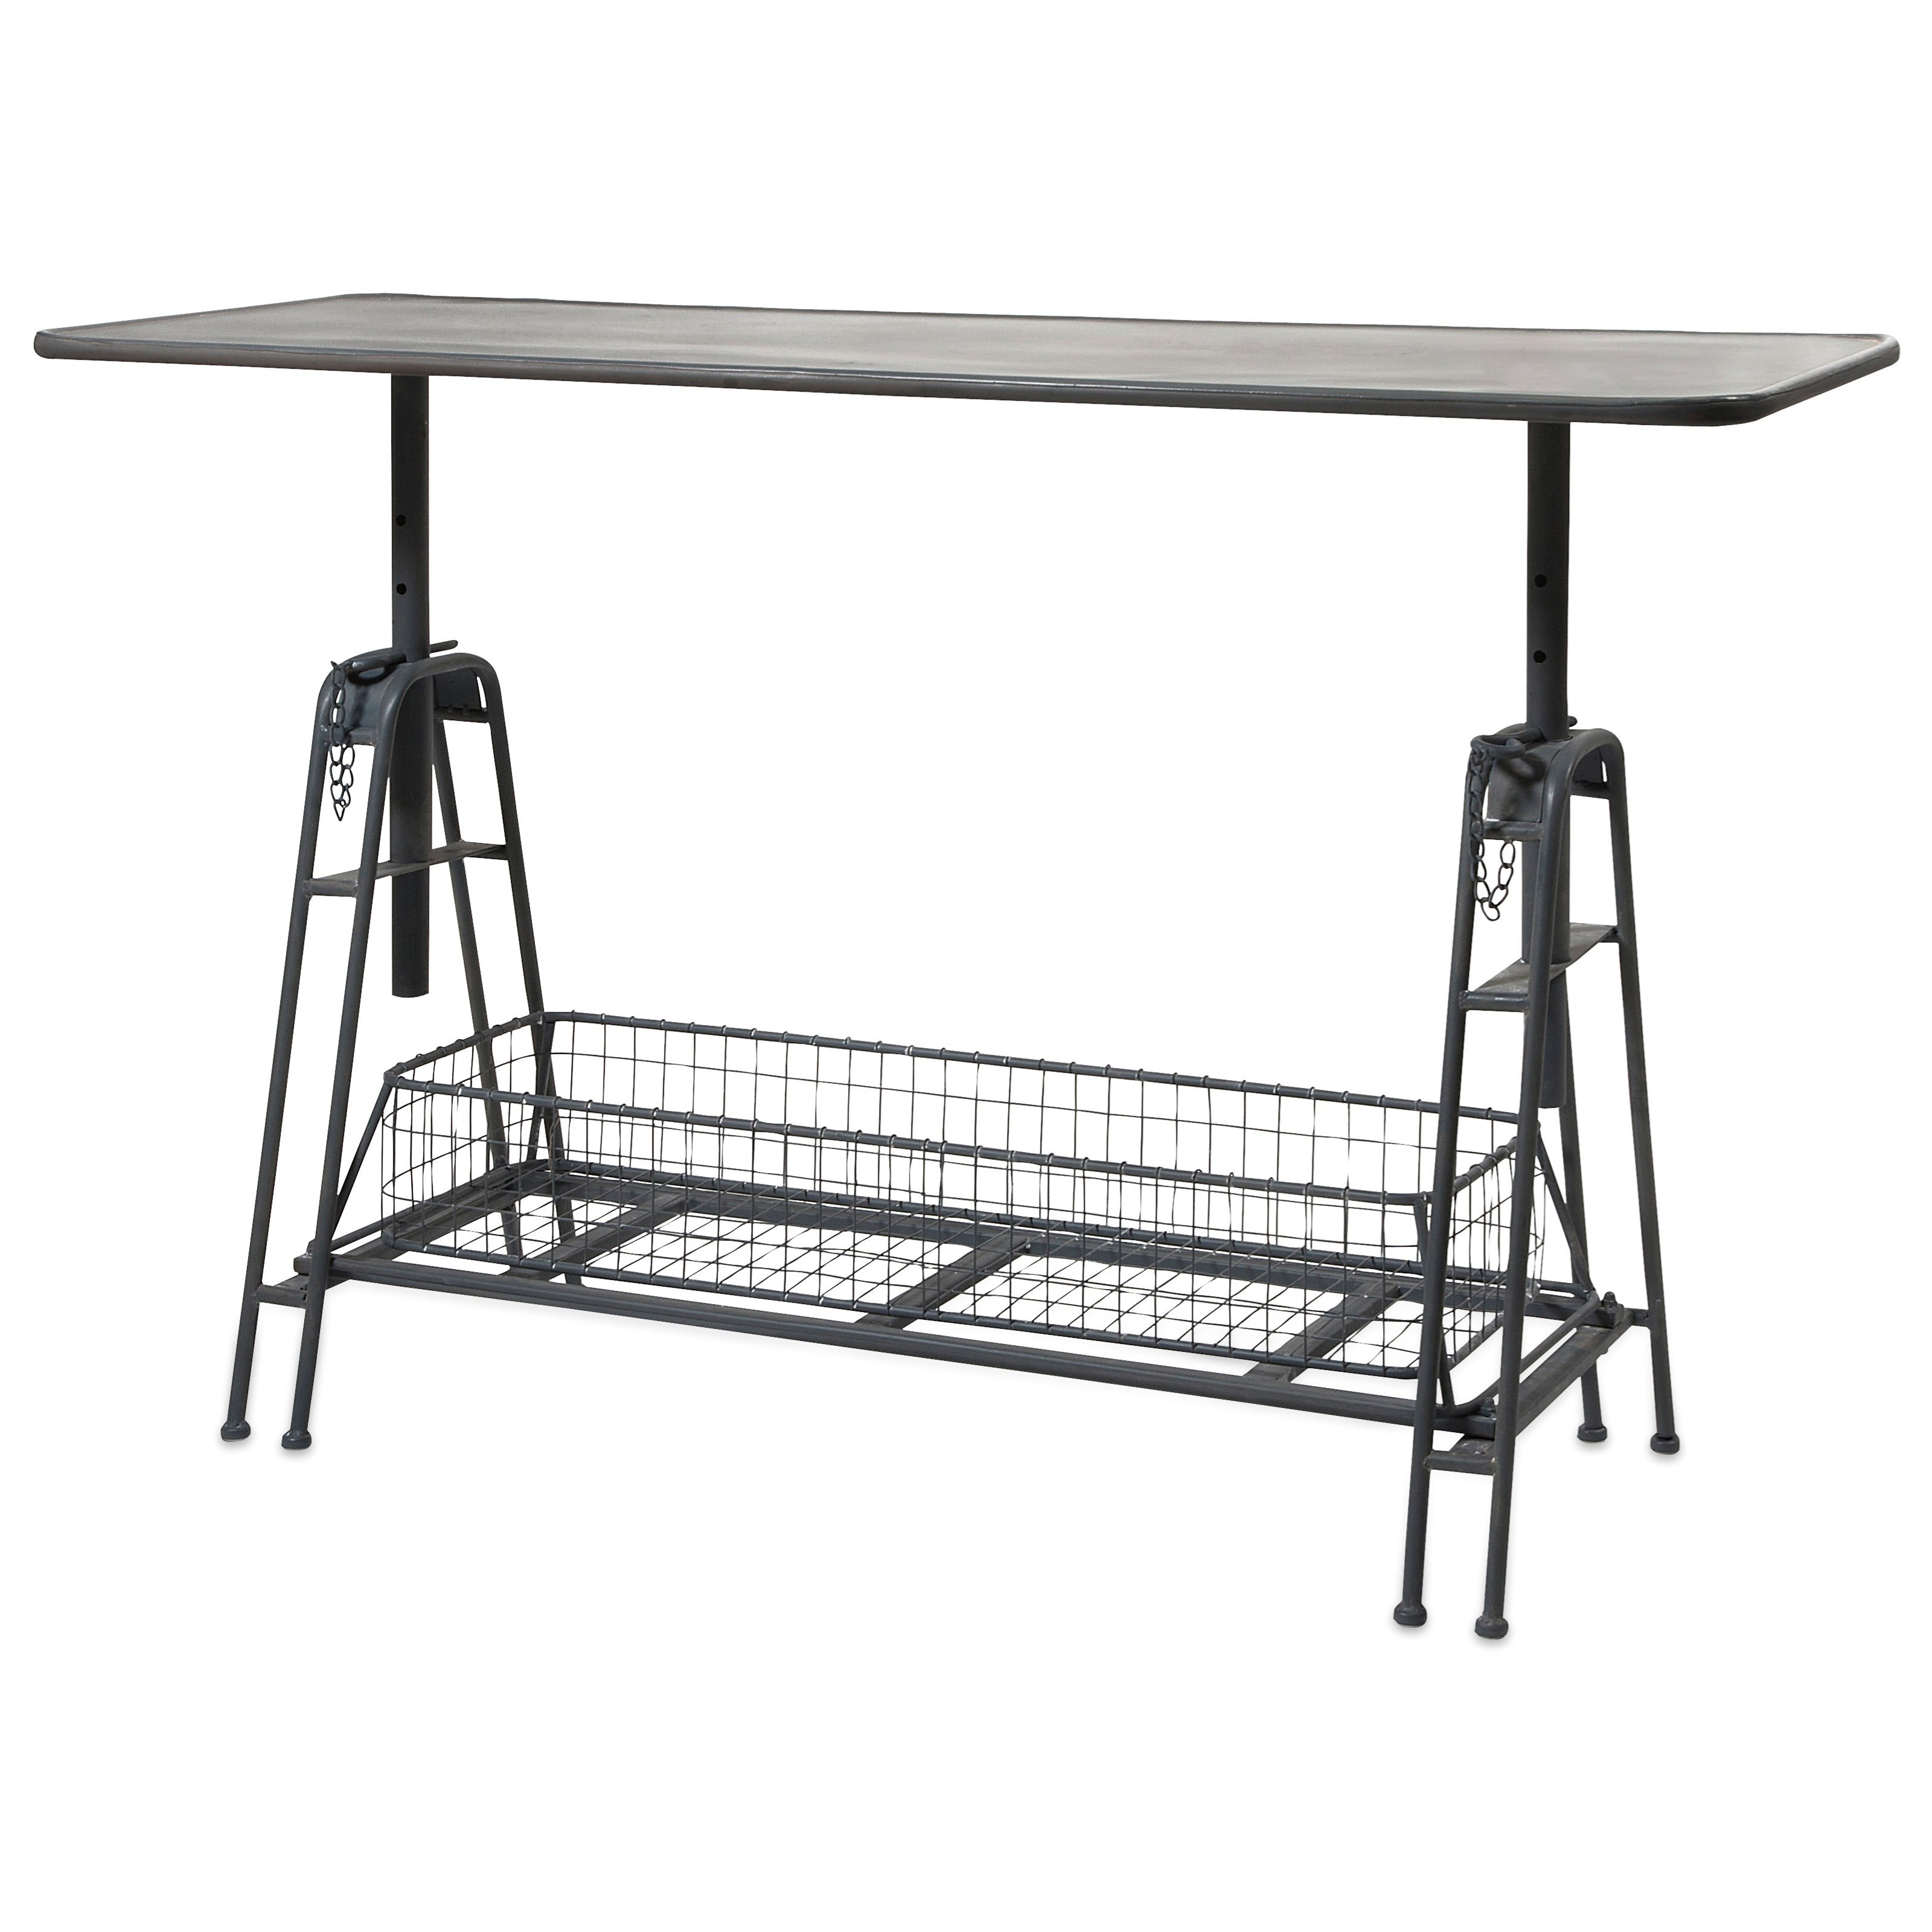 Accent Tables and Cabinets Henry Adjustable Metal Work Table by IMAX Worldwide Home at Alison Craig Home Furnishings